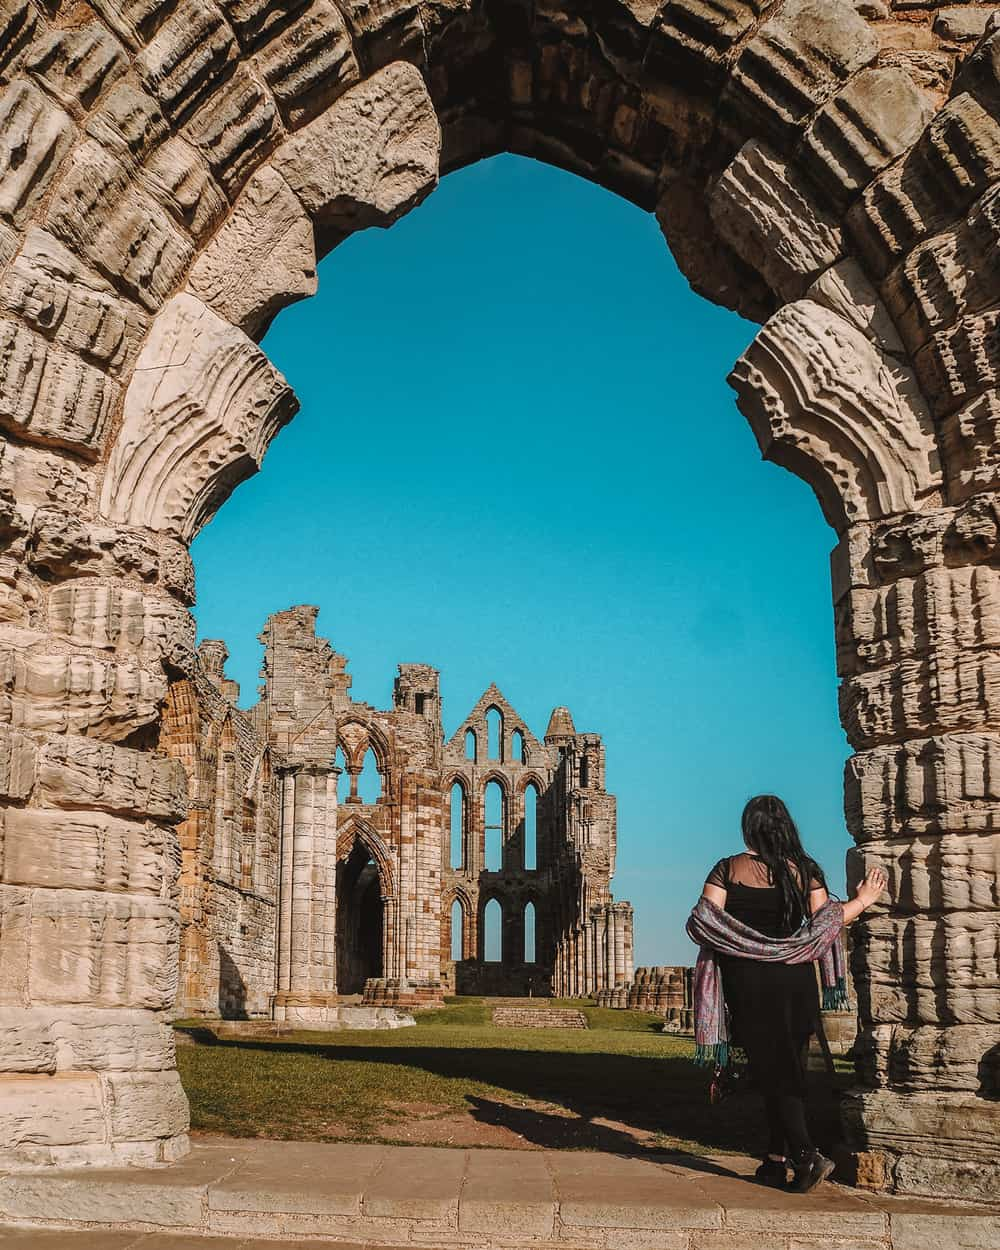 Dracula in Whitby ruins